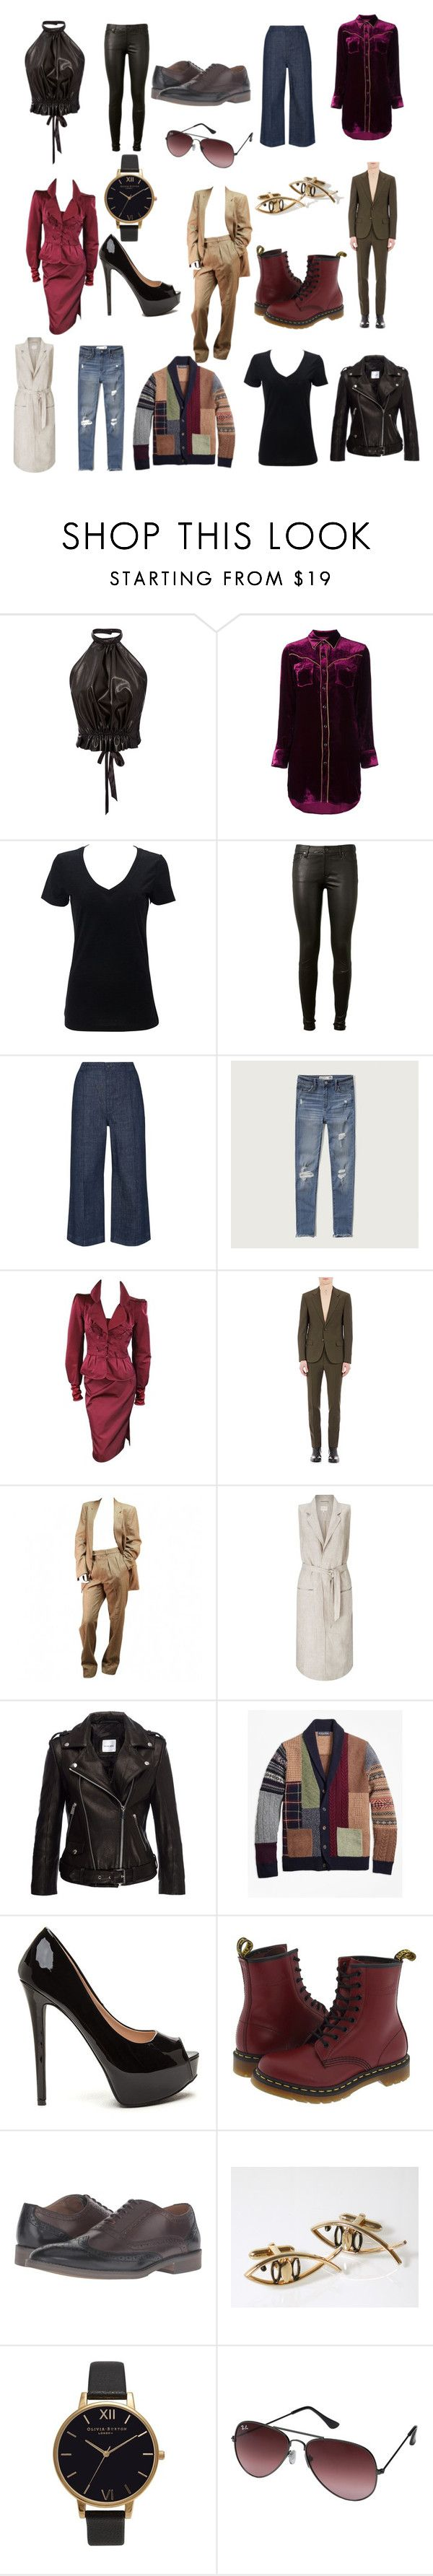 """FemBois 2 M.I.N  ( Me In Nice Clothes )"" by veganchefmarie on Polyvore featuring Rodarte, Yves Saint Laurent, AG Adriano Goldschmied, Whistles, Abercrombie & Fitch, Tom Ford, Maison Margiela, EAST, Anine Bing and Brooks Brothers"